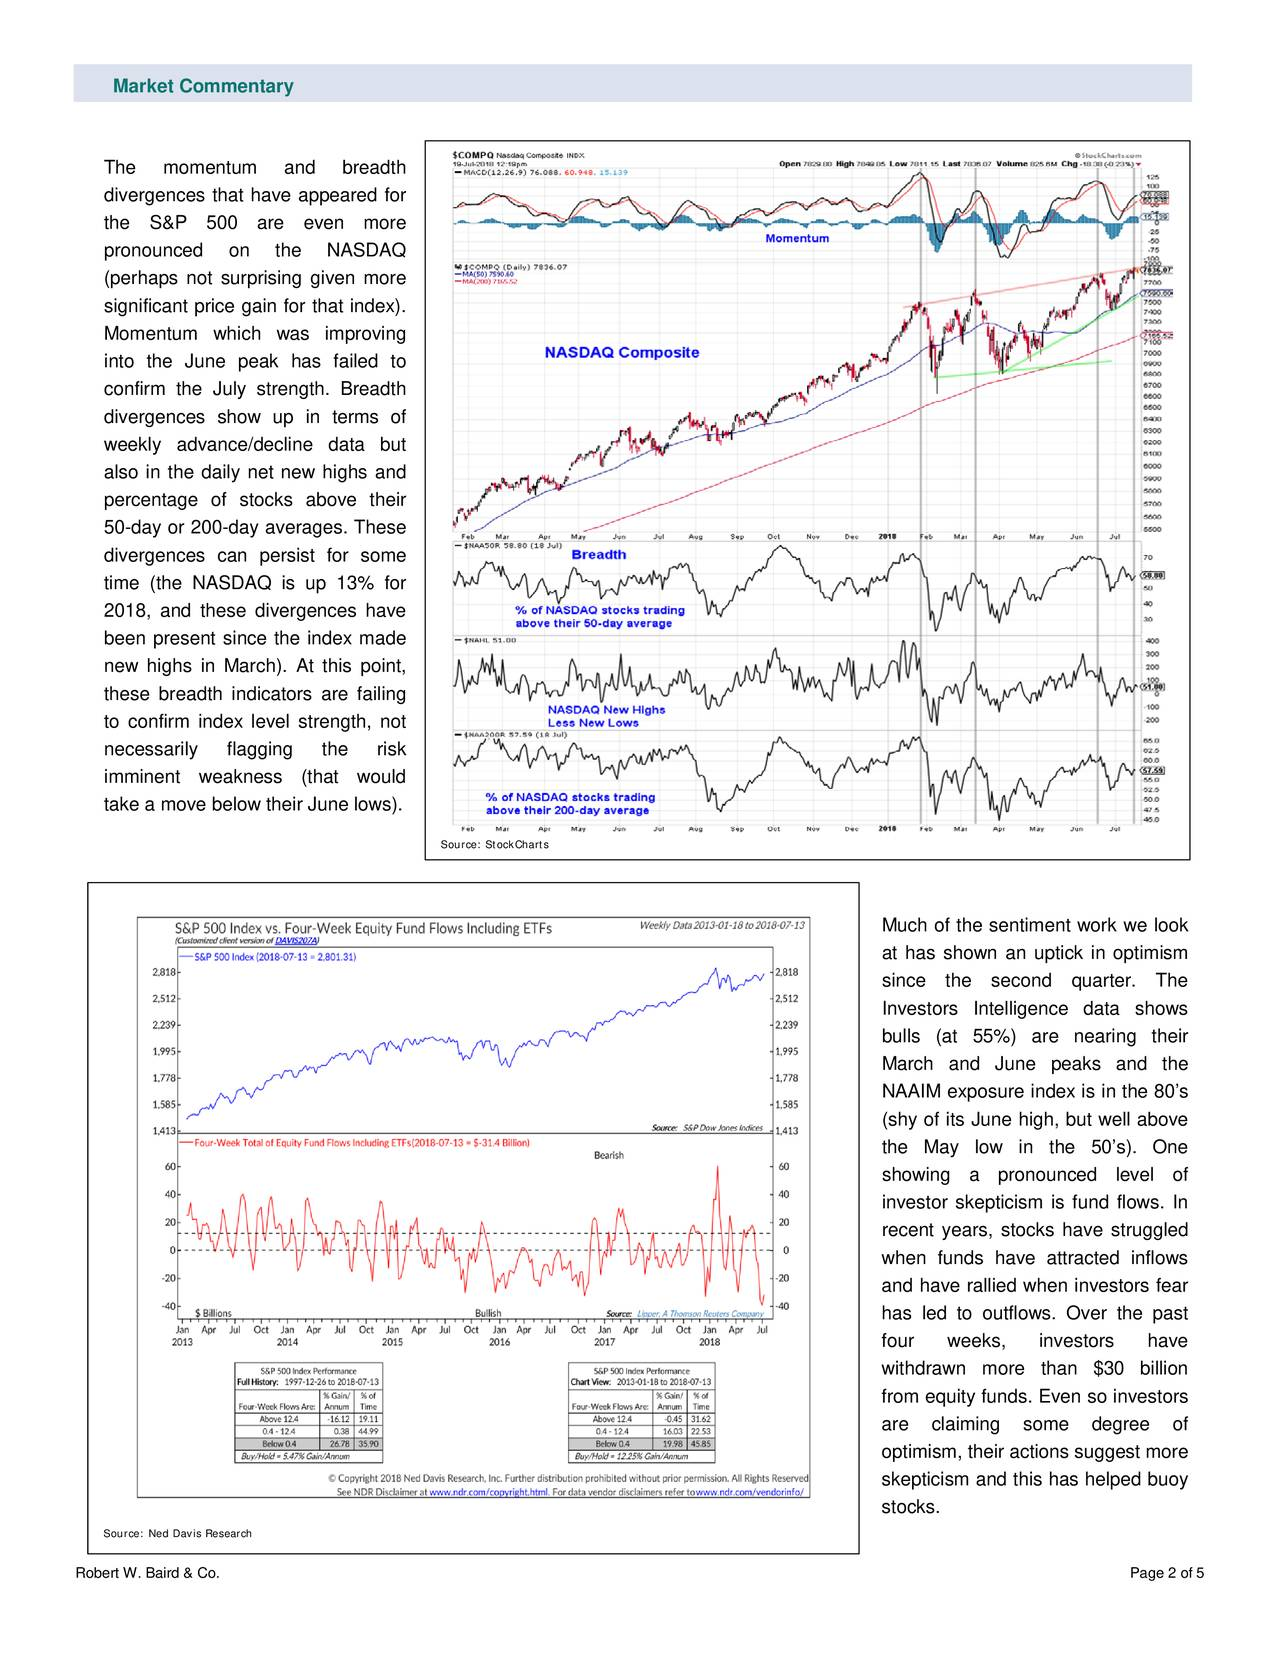 The momentum and breadth divergences that have appeared for the S&P 500 are even more pronounced on the NASDAQ (perhaps not surprising given more significant price gain for that index). Momentum which was improving into the June peak has failed to confirm the July strength. Breadth divergences show up in terms of weekly advance/decline data but also in the daily net new highs and percentage of stocks above their 50-day or 200-day averages. These divergences can persist for some time (the NASDAQ is up 13% for 2018, and these divergences have been present s ince the index made new highs in March). At this point, these breadth indicators are failing to confirm index level strength, not necessarily flagging the risk imminent weakness (that would take a move below their June lows). Source: StockCharts Much of the sentiment work we look at has shown an uptick in optimism since the second quarter . The Investors Intelligence data shows bulls (at 55%) are nearing their March and June peaks and the NAAIM exposure index is in the 80's (shy of its June high, but well above the May low in the 50's). One showing a pronounced level of investor skepticism is fund flows. In recent years, stocks have struggled when funds have attrac ted inflows and have rallied when investors fear has led to outflows. Over the past four weeks, investors have withdrawn more than $30 billion from equity funds. Even so investors are claiming some degree of optimism, their actions suggest more skepticism and this has helped buoy stocks. Source: Ned DavisResearch Robert W. Baird & Co. Page 2 of 5